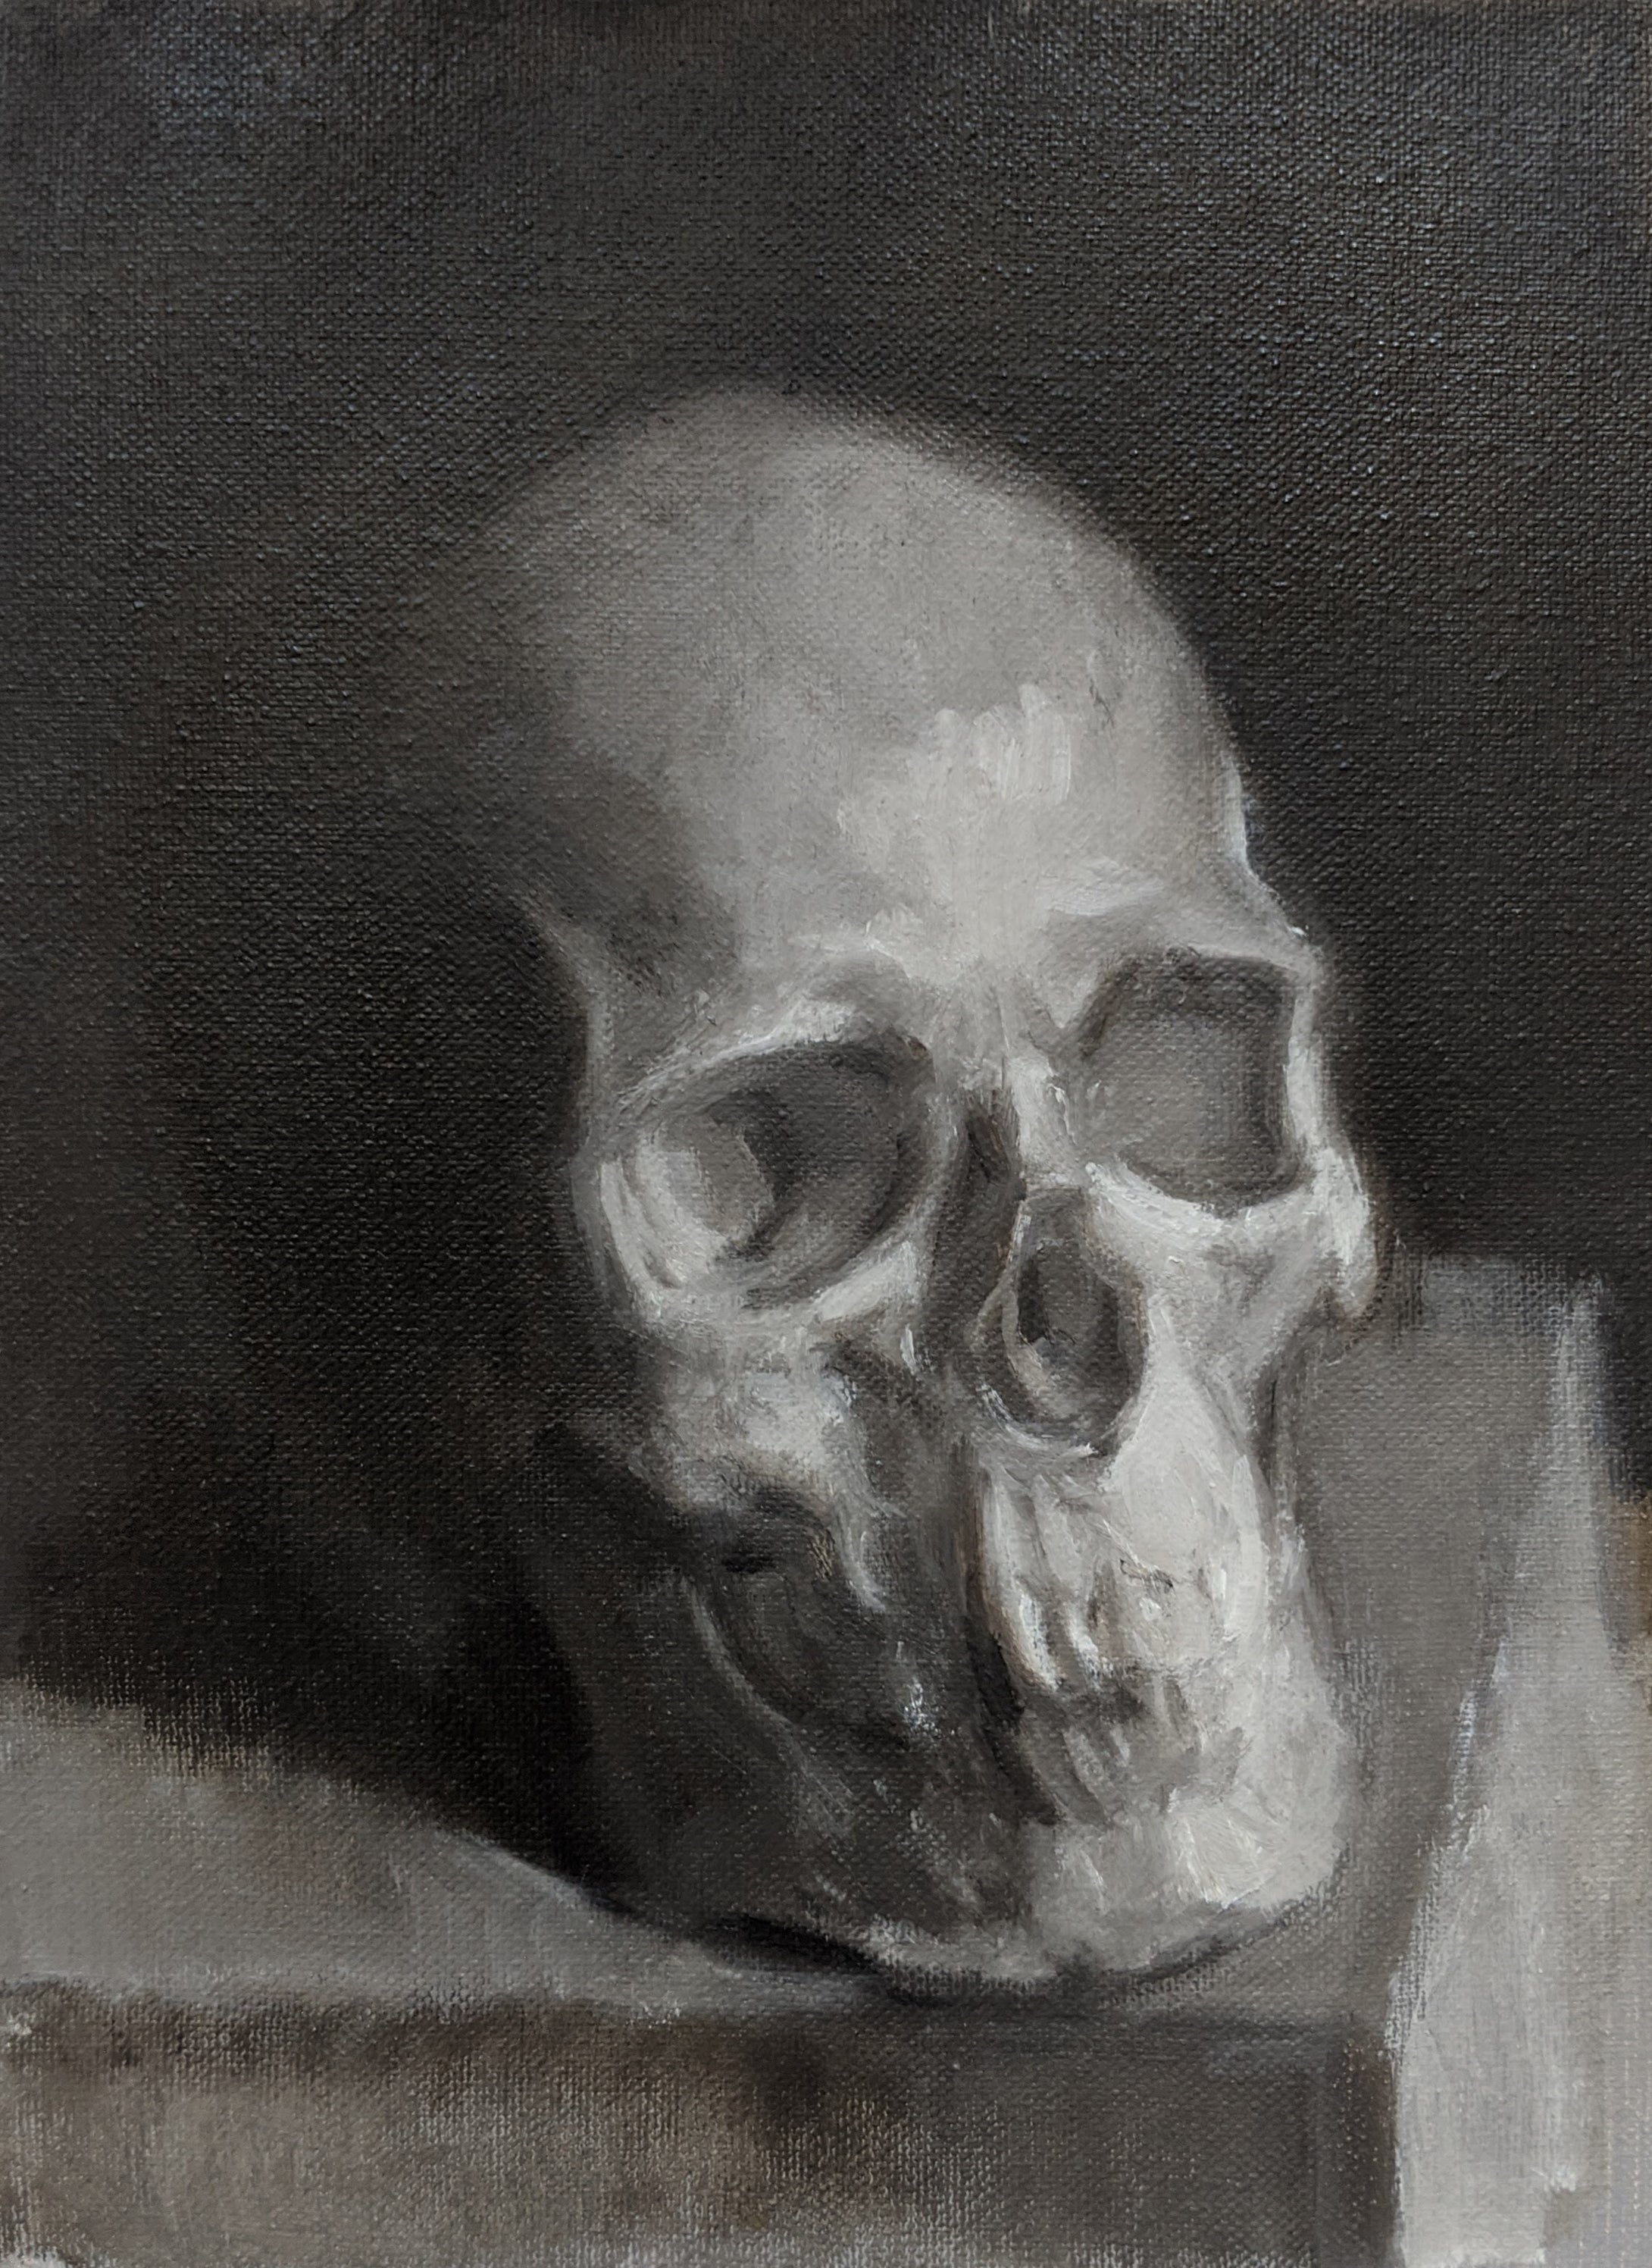 Skull Study in Black and White